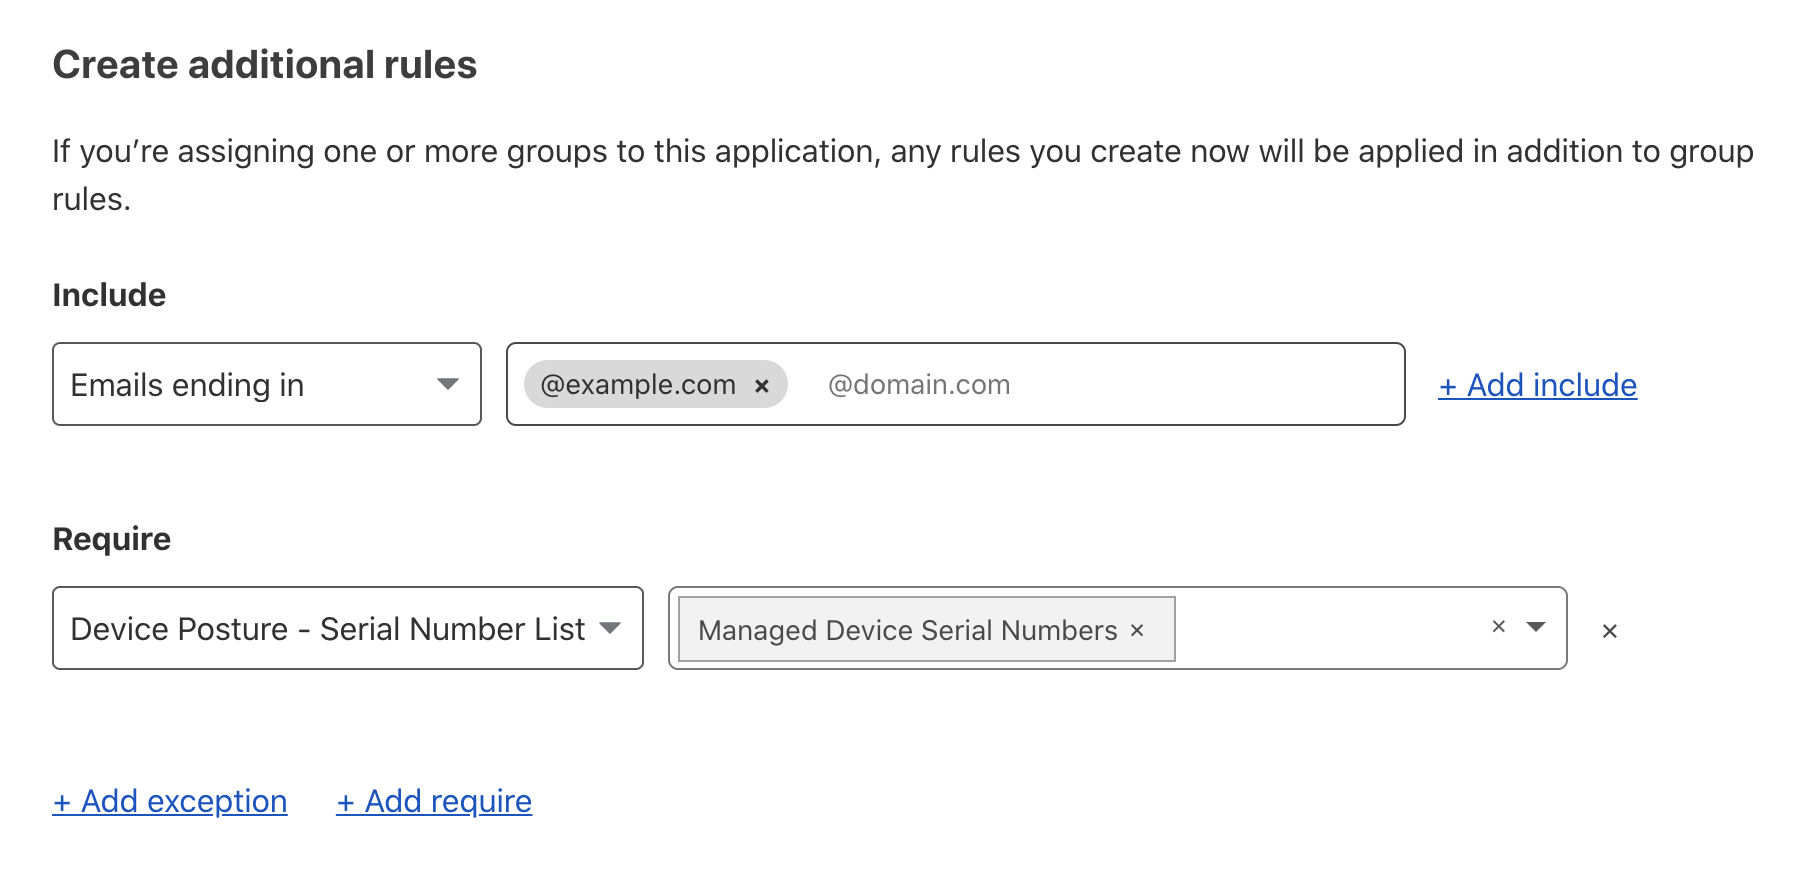 You will now be able to build Access rules that check if a device's serial number is in the managed devices list.